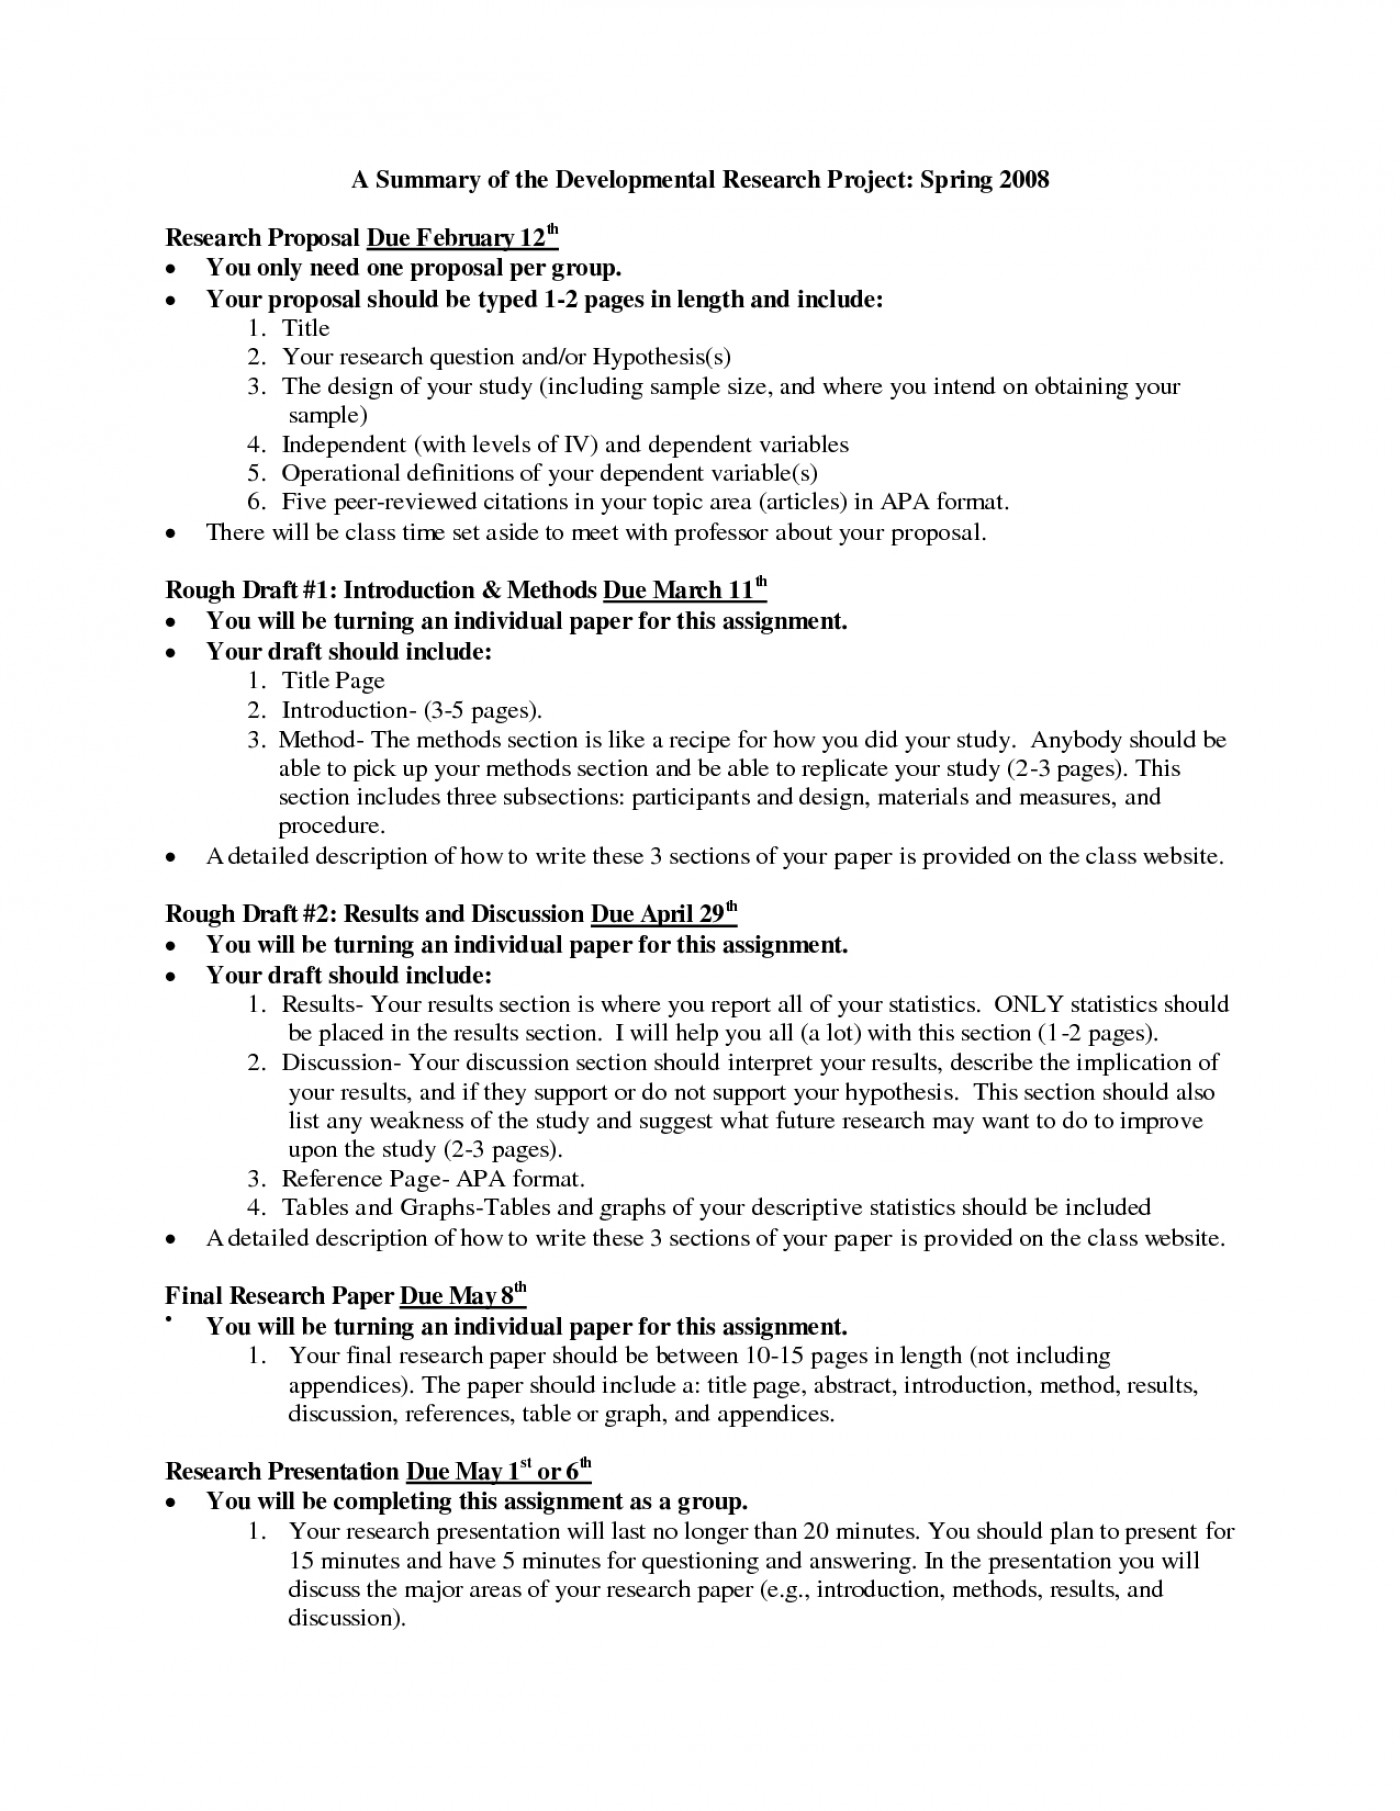 012 Good Research Paper Topic Psychology Undergraduate Resume Unique Sample Singular Topics 2019 Ideas In Business And Finance For College Students 1400